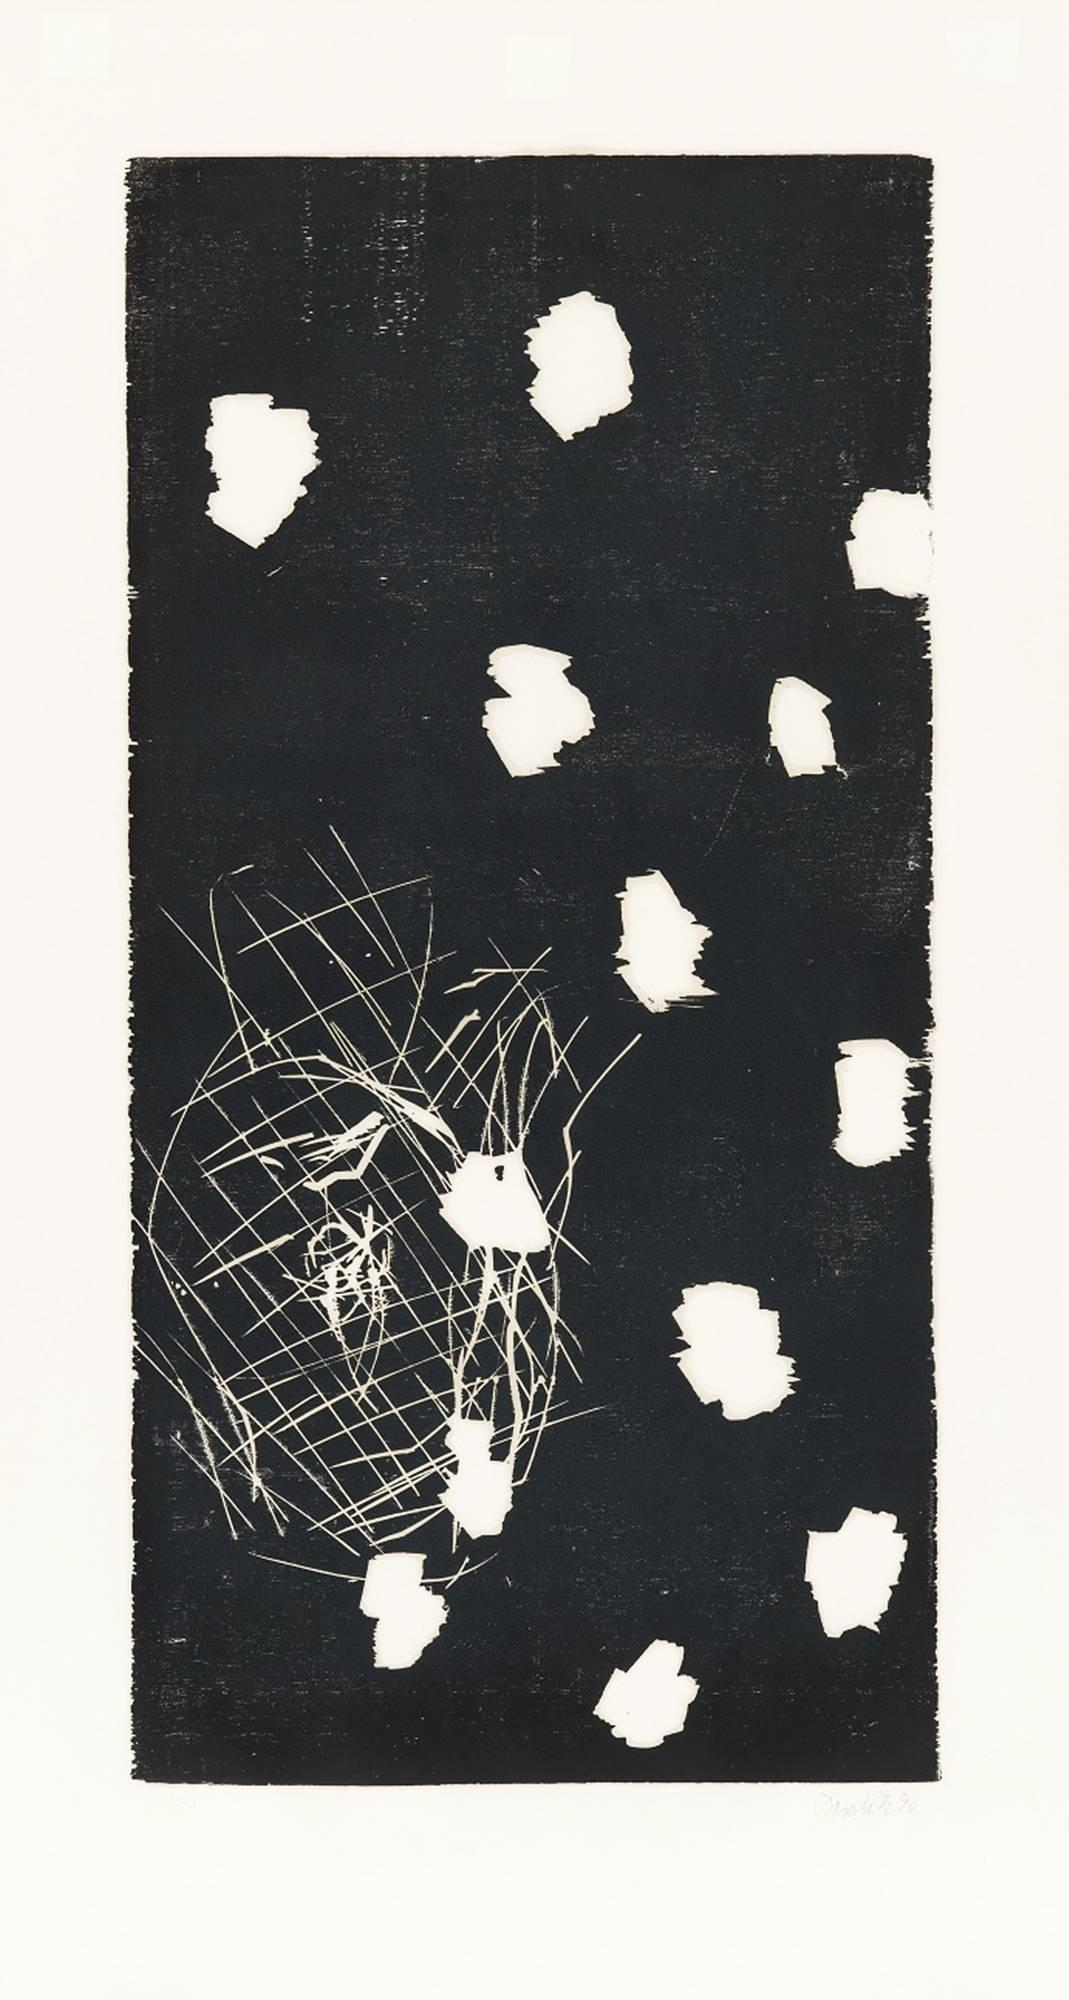 45 - November, Woodcut, Contemporary Art, Expressionism, 20th Century